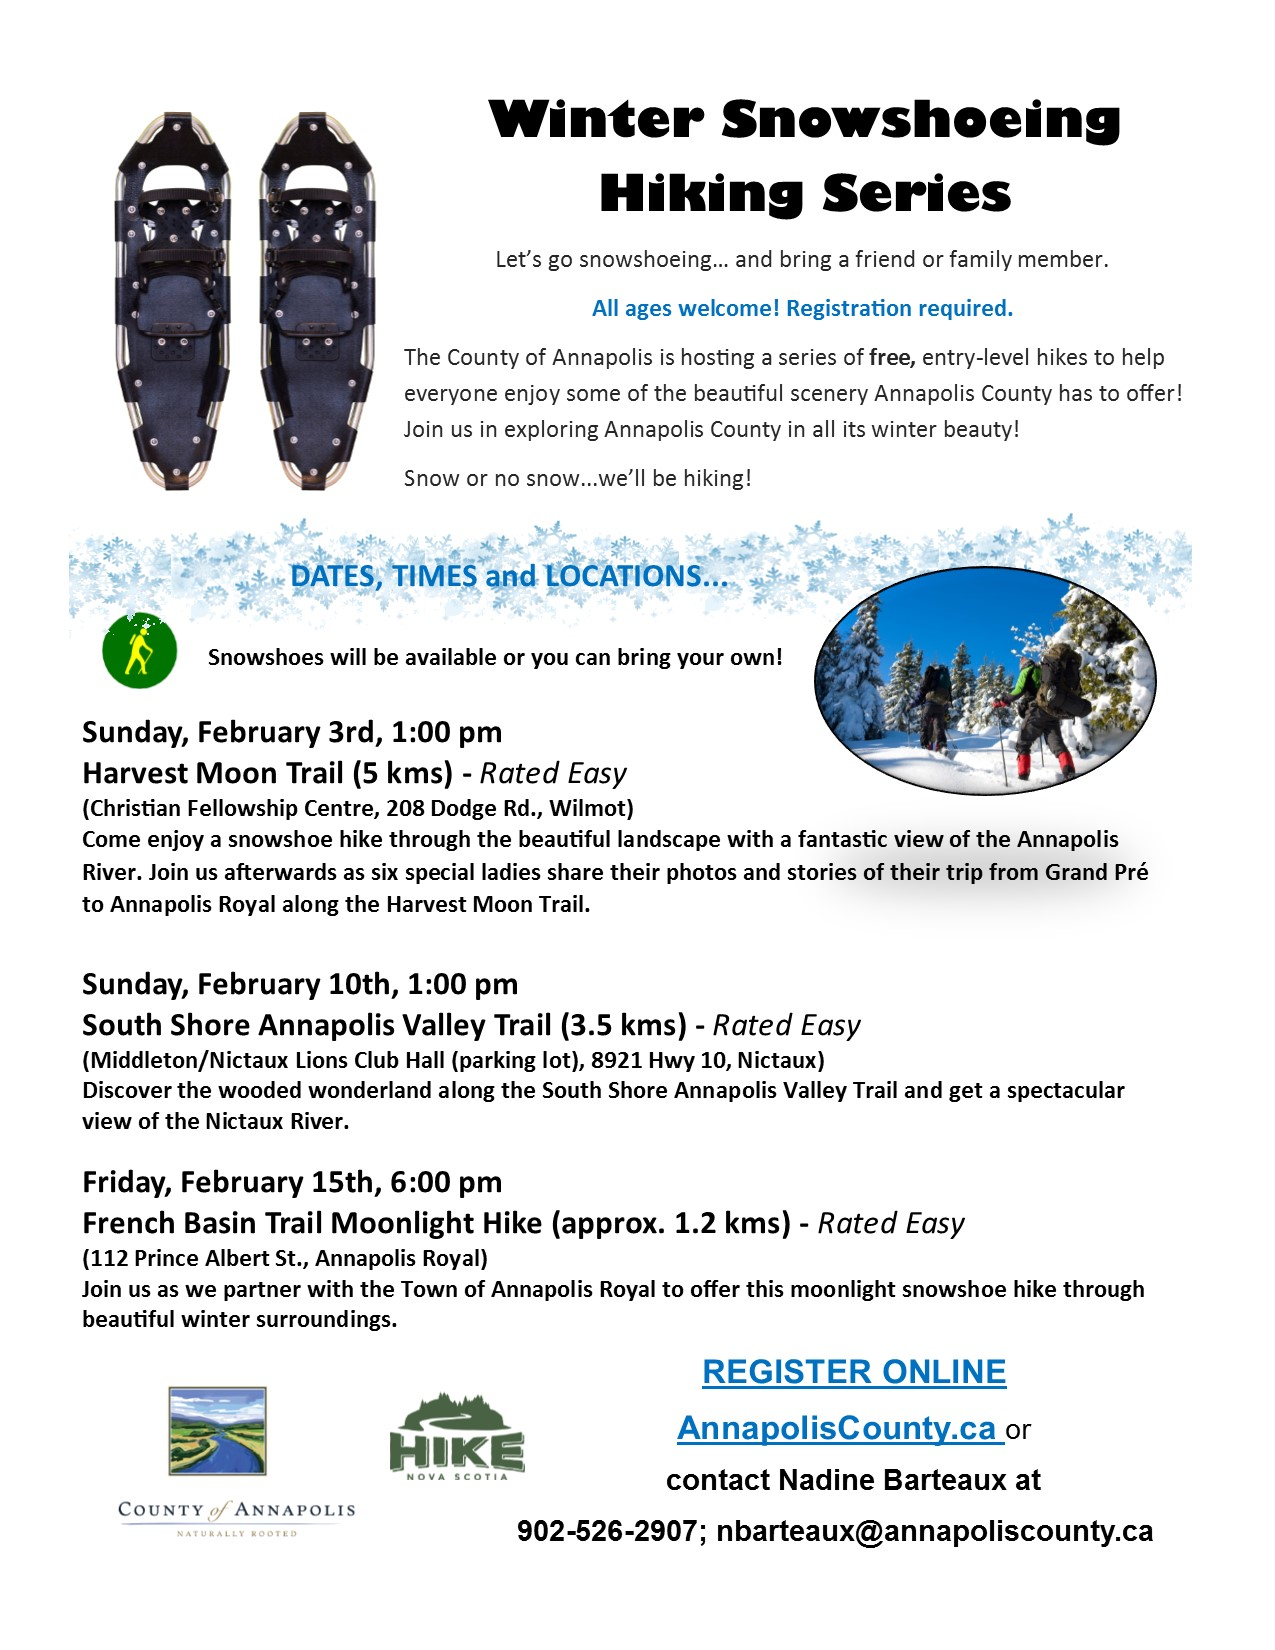 2019 Winter Snowshoeing Hiking Series poster